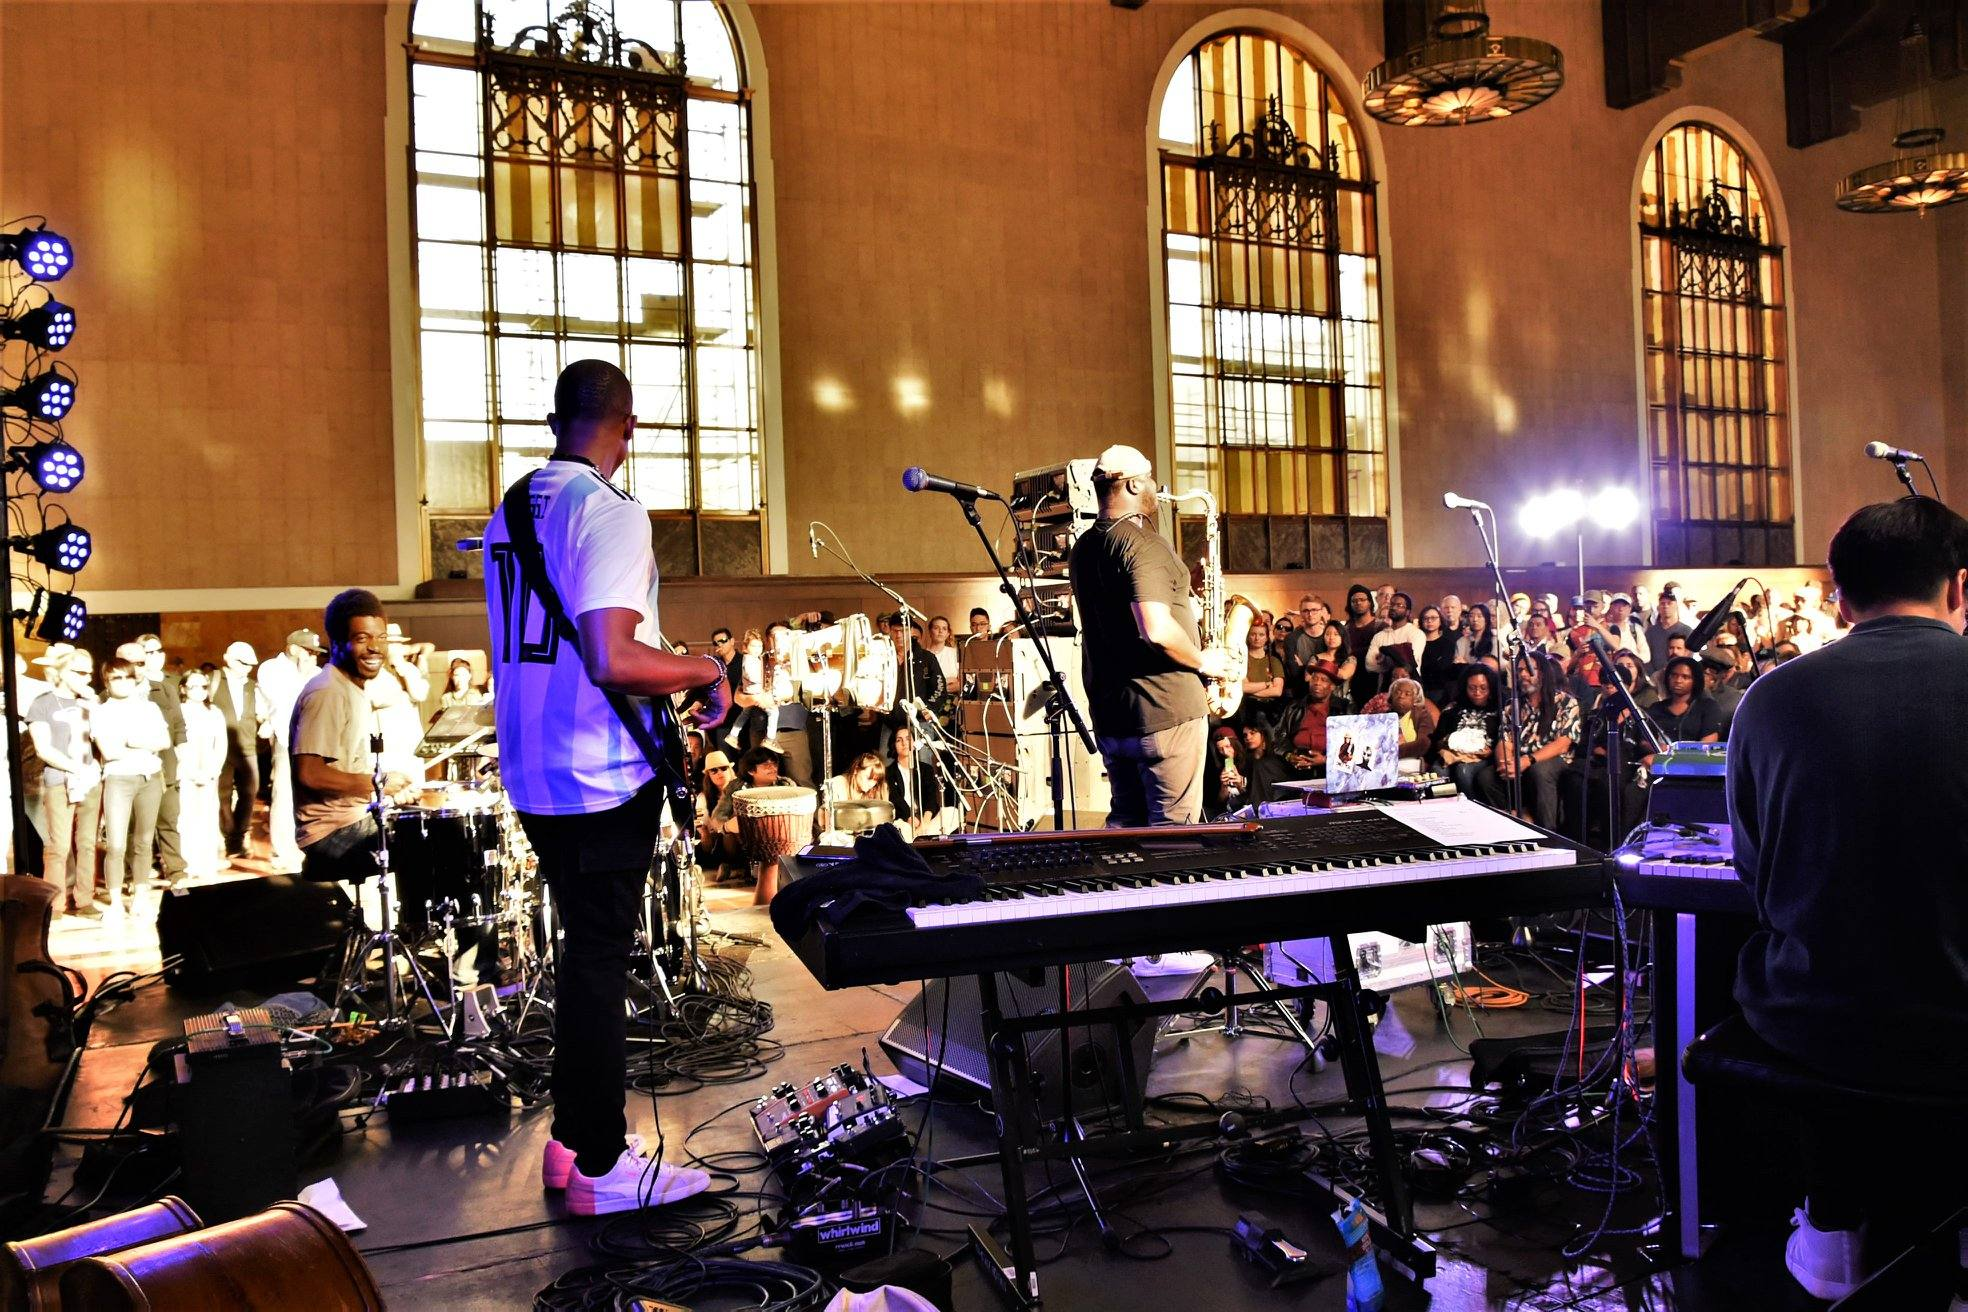 Black Nile Live at Union StationBlack Nile Live at Union StationBlack Nile Live at Union StationBlack Nile Live at Union StationBlack Nile Live at Union Station